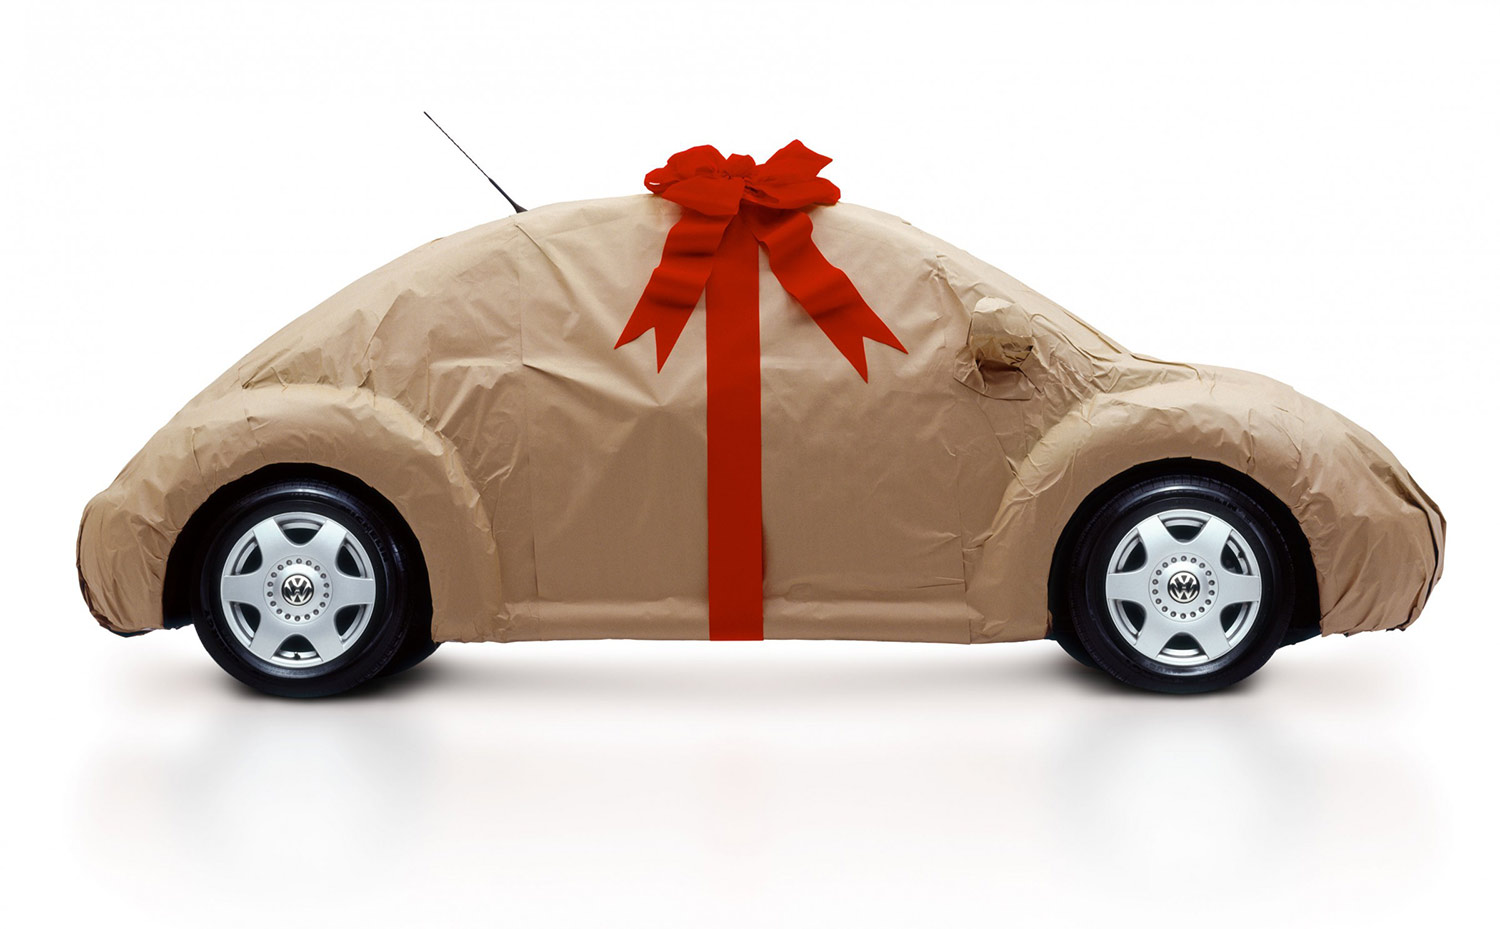 vw-beetle-wrapped-for-christmas.jpg